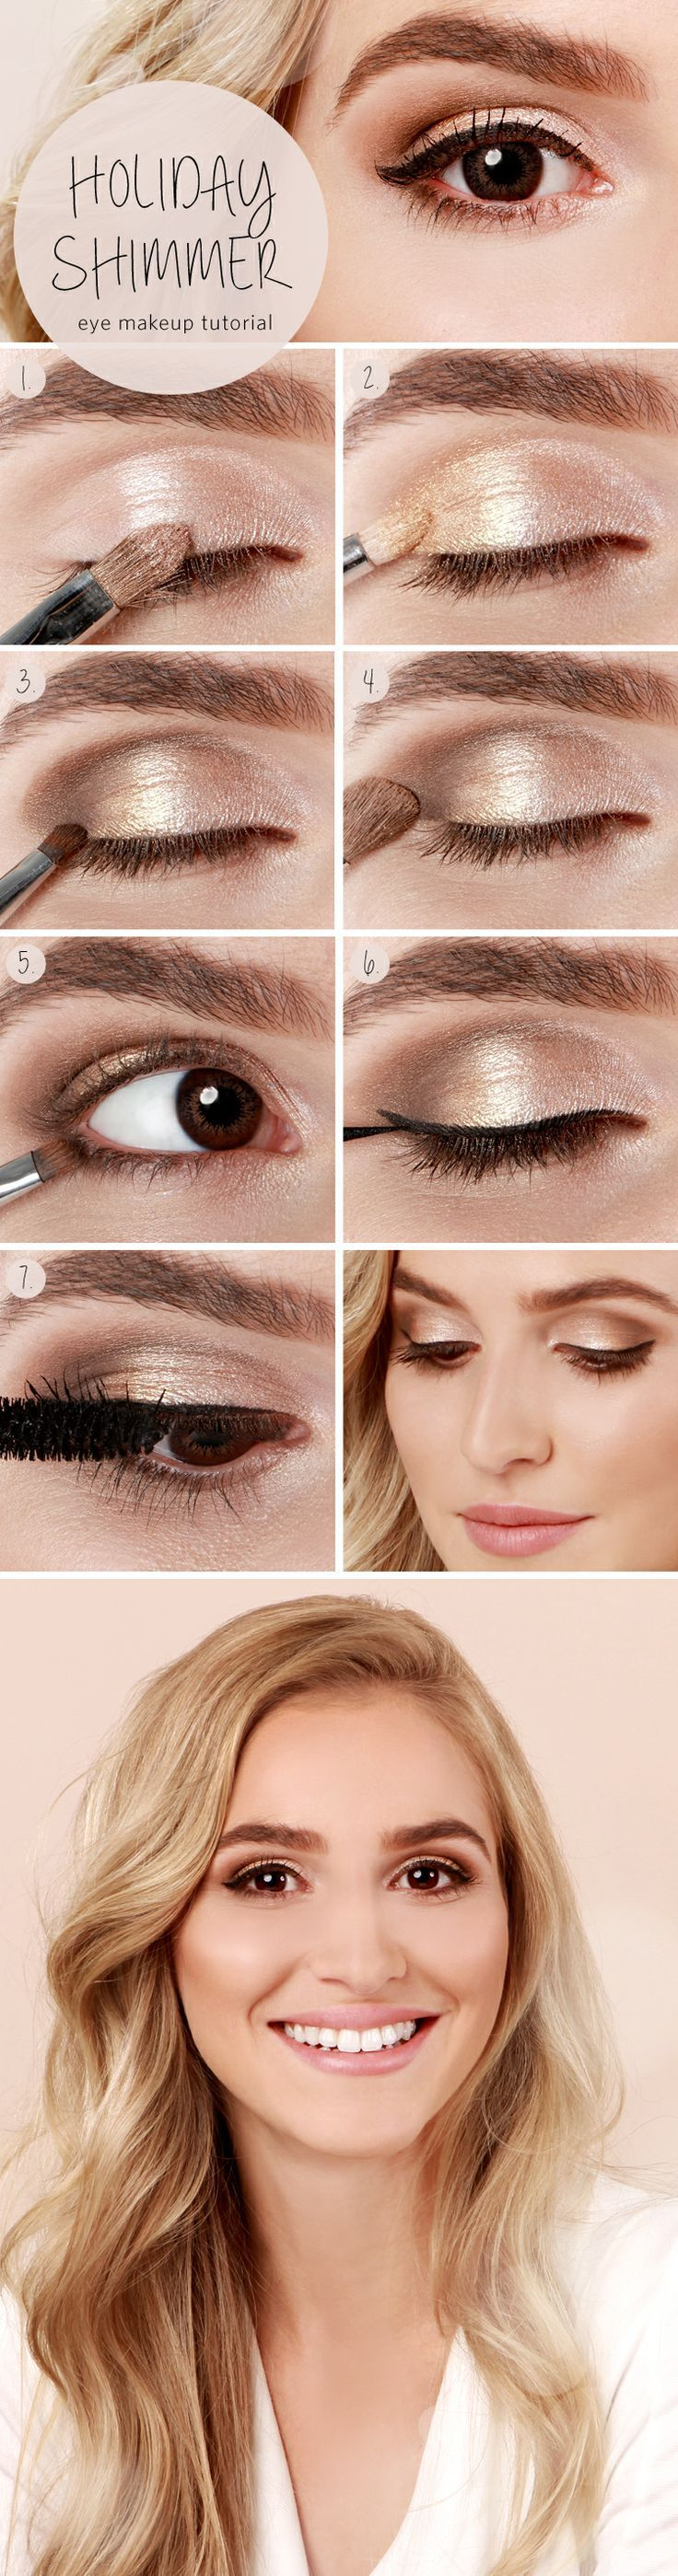 10 amazing eye makeup tutorials to turn you into a beauty WHIZZ: http://www.cosmopolitan.co.uk/beauty-hair/makeup/how-to/a31206/best-eye-makeup-tutorials/